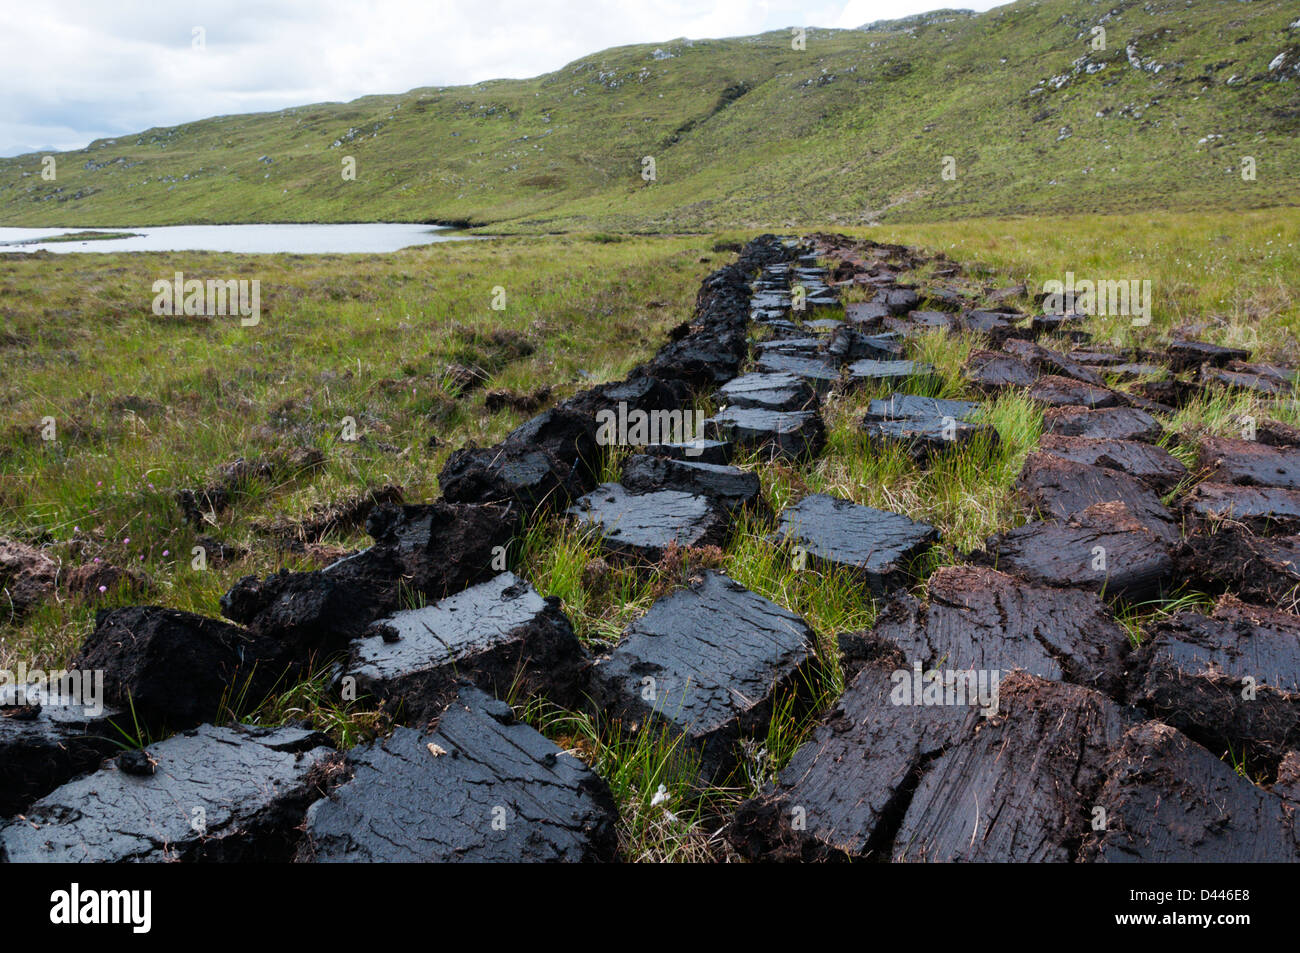 Freshly cut peat turves laid out on moorland to dry in west Lewis, Outer Hebrides. - Stock Image